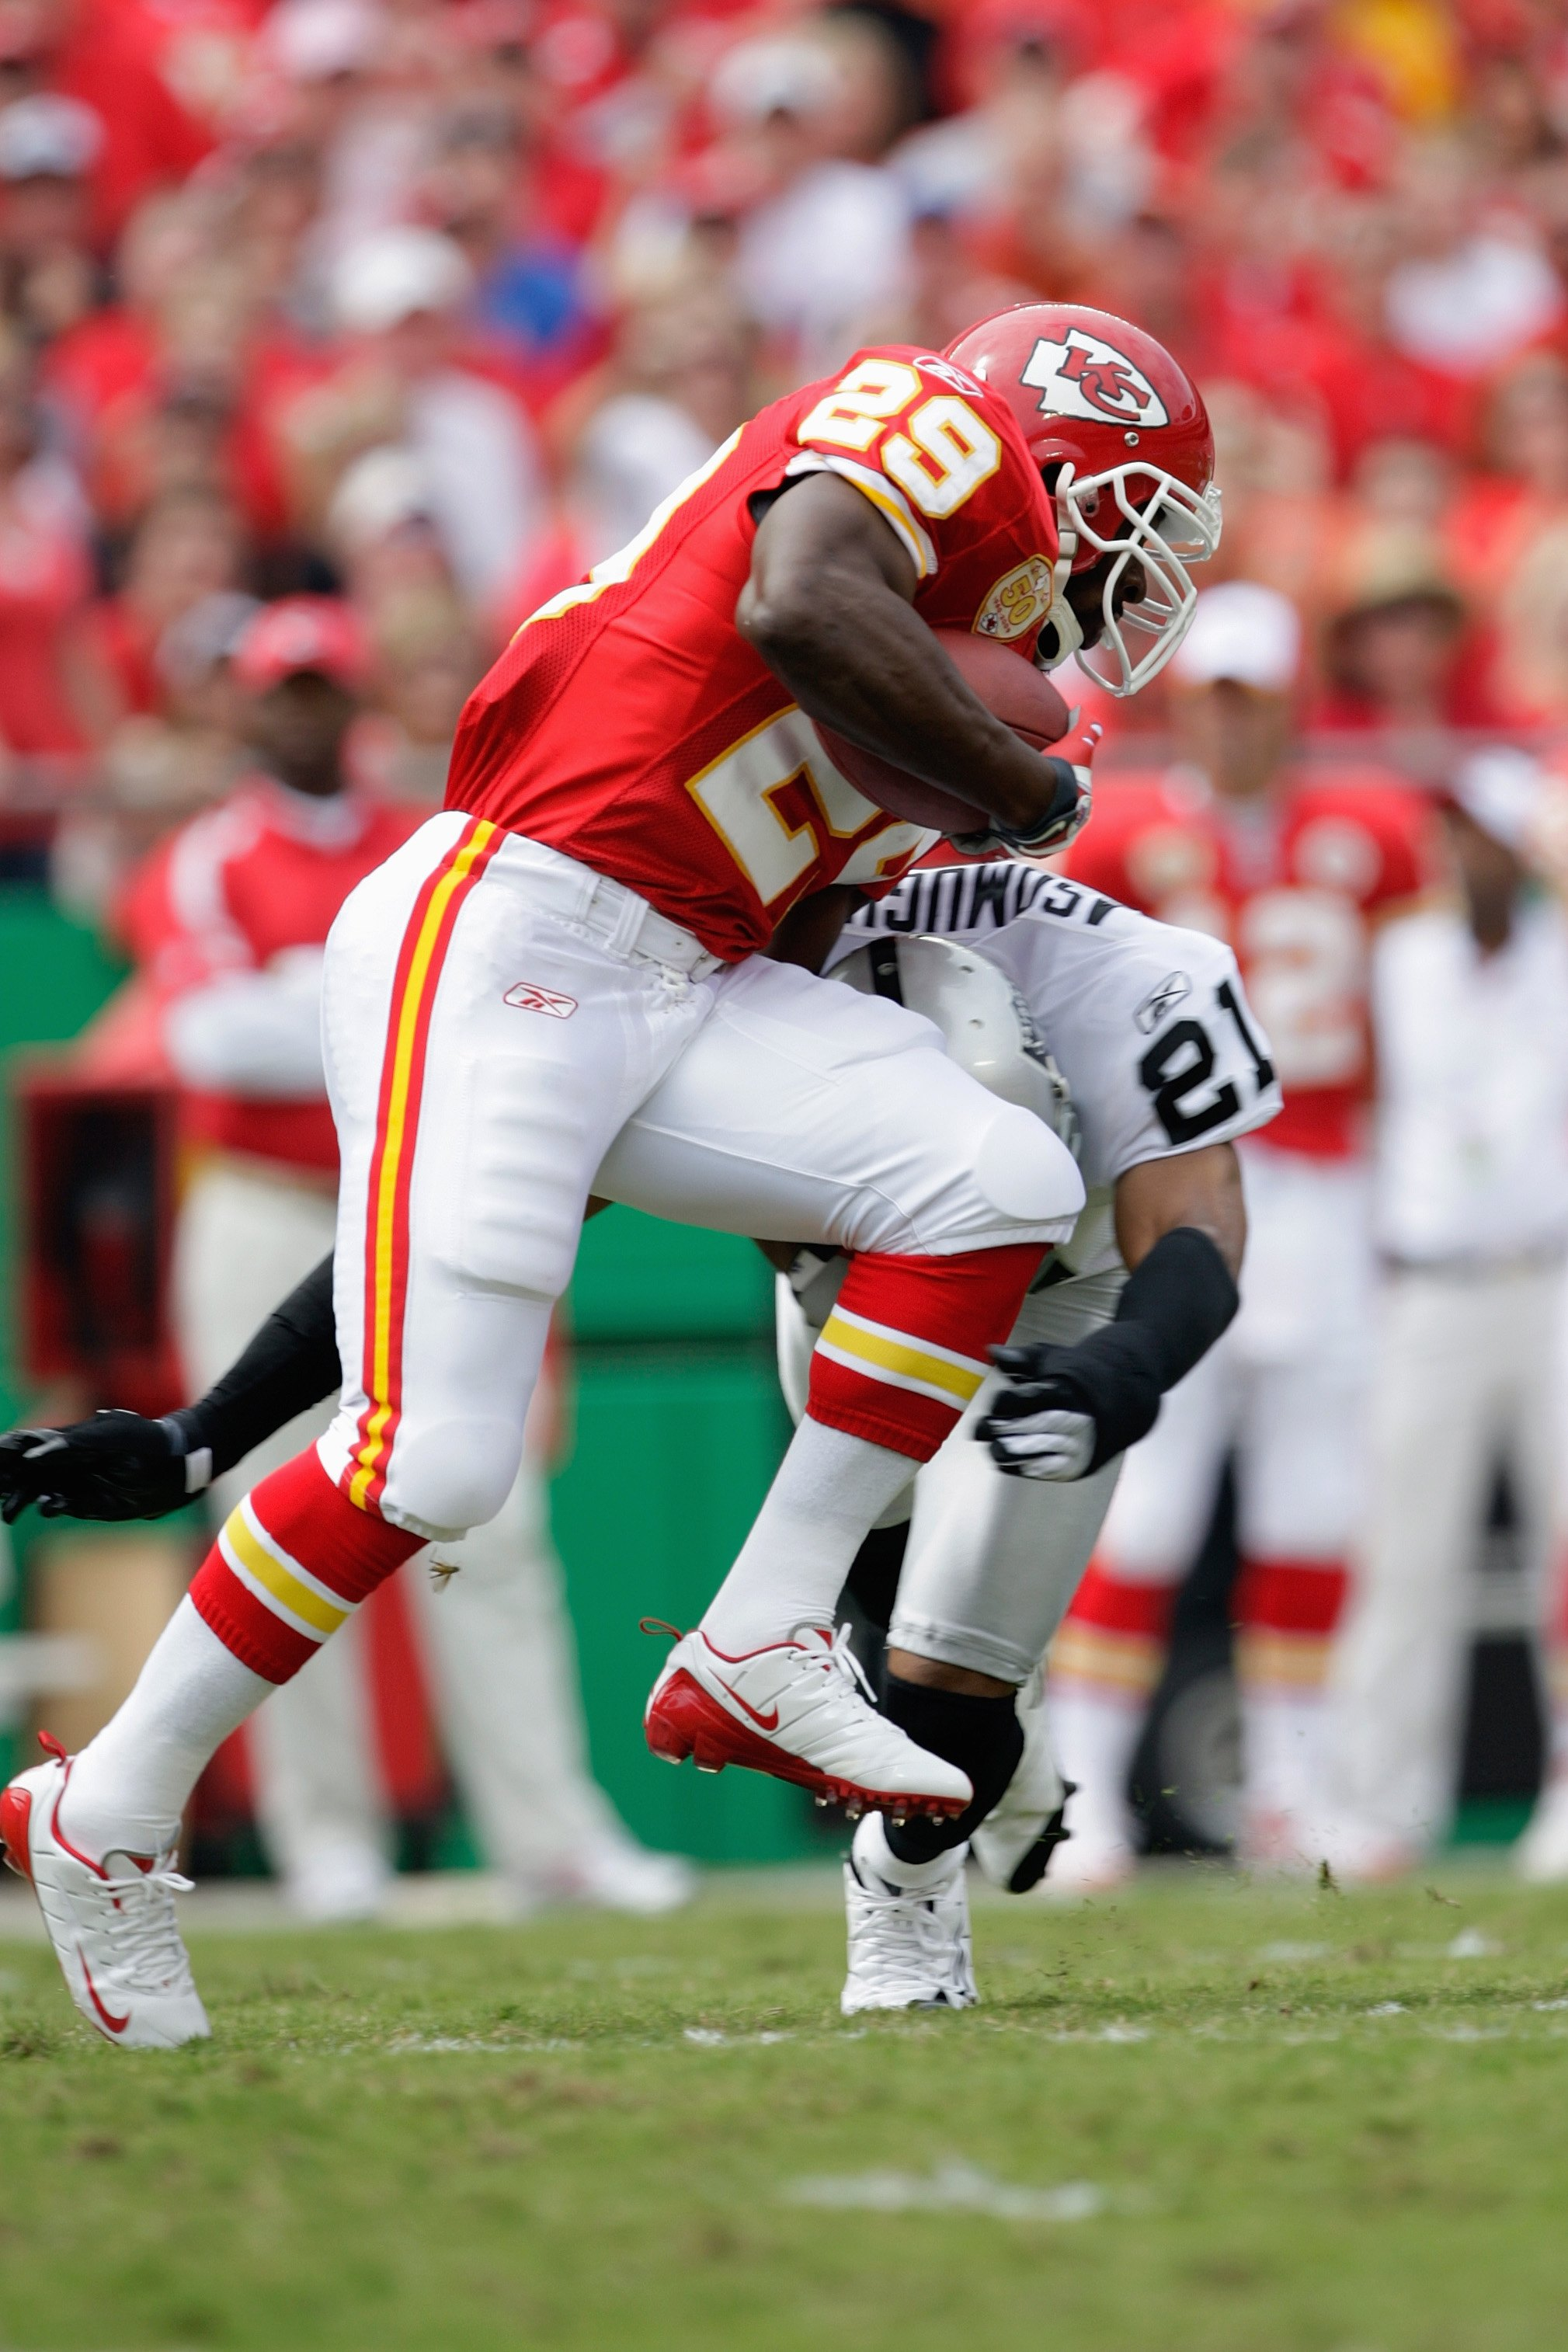 KANSAS CITY, MO - SEPTEMBER 20:  Dantrell Savage #29 of the Kansas City Chiefs carries the ball against Nnamdi Asomugha #21 of the Oakland Raiders during the game at Arrowhead Stadium on September 20, 2009 in Kansas City, Missouri. (Photo by Jamie Squire/